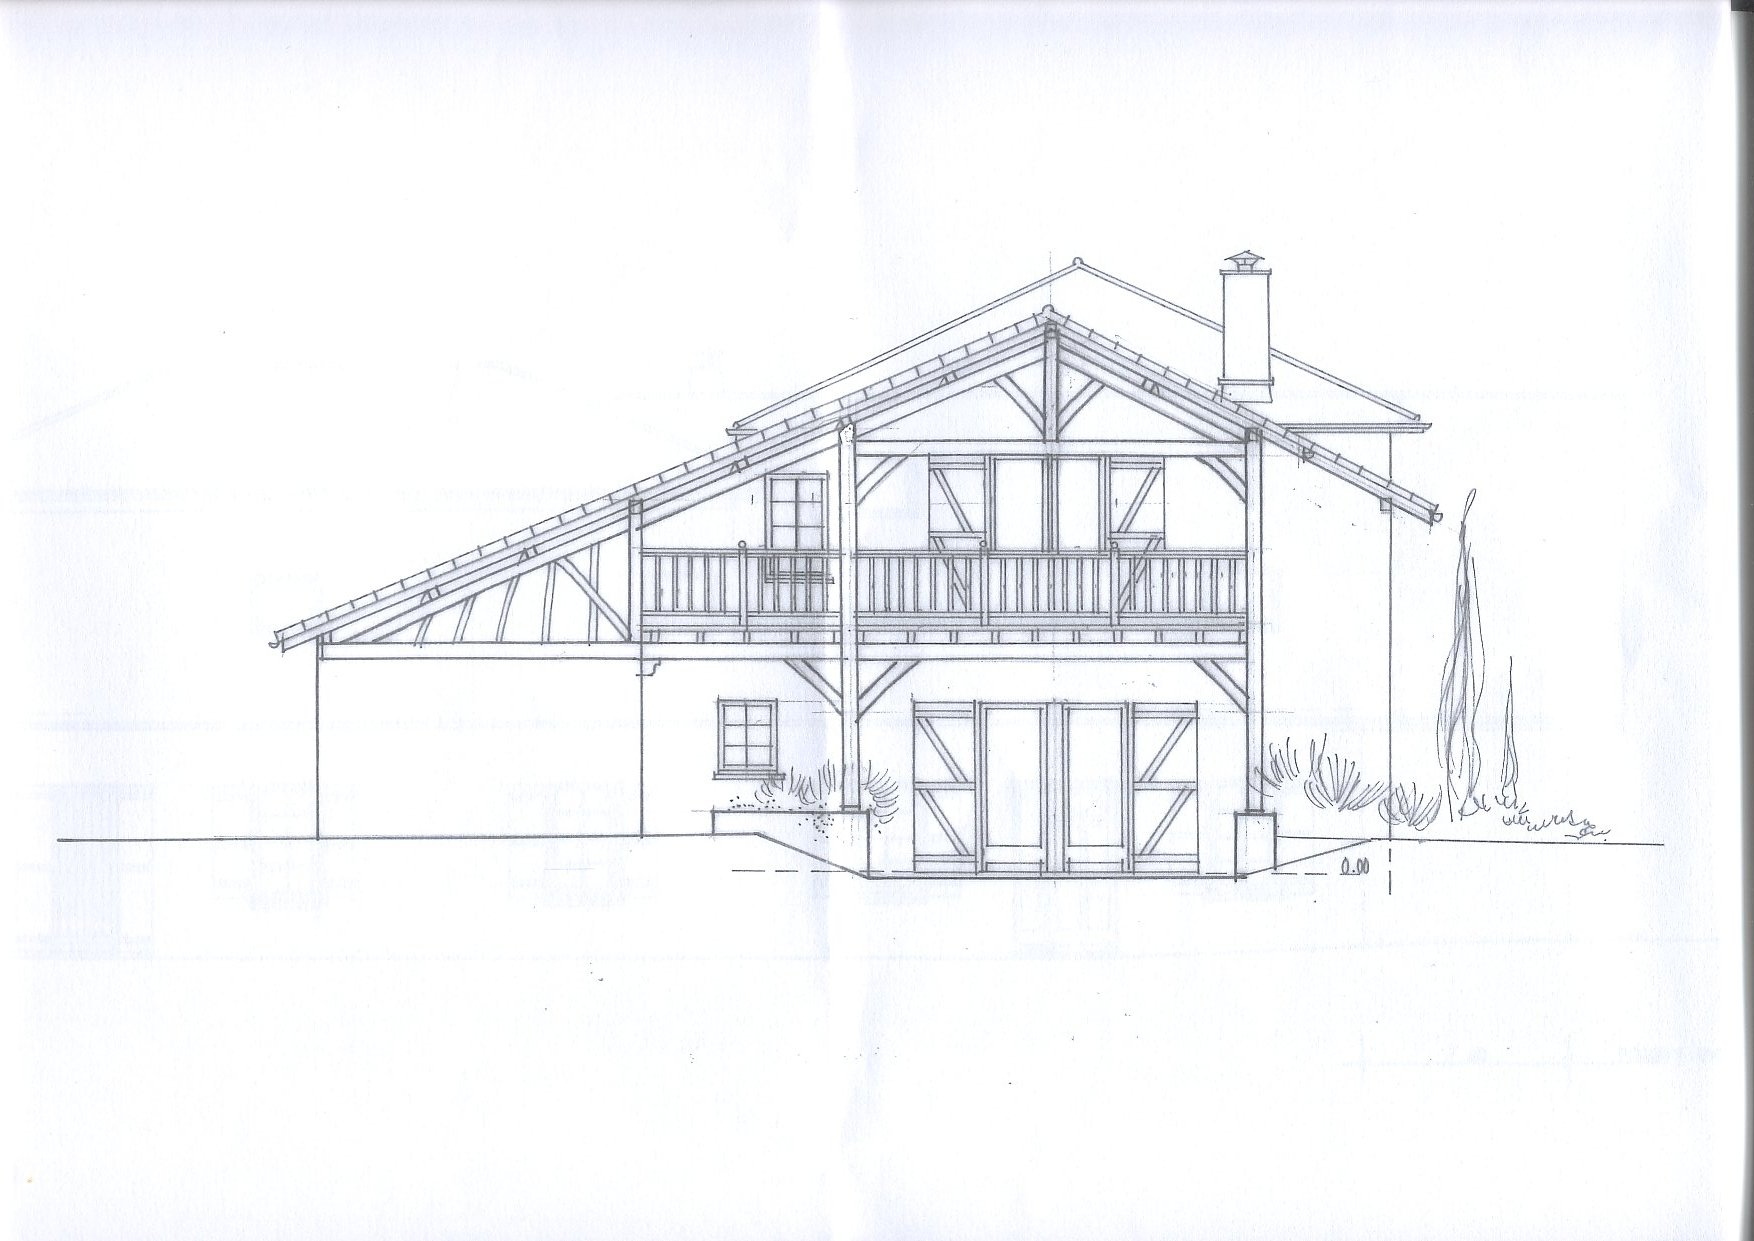 Architecture drawing of house delighful architecture for Architectural drawings for houses